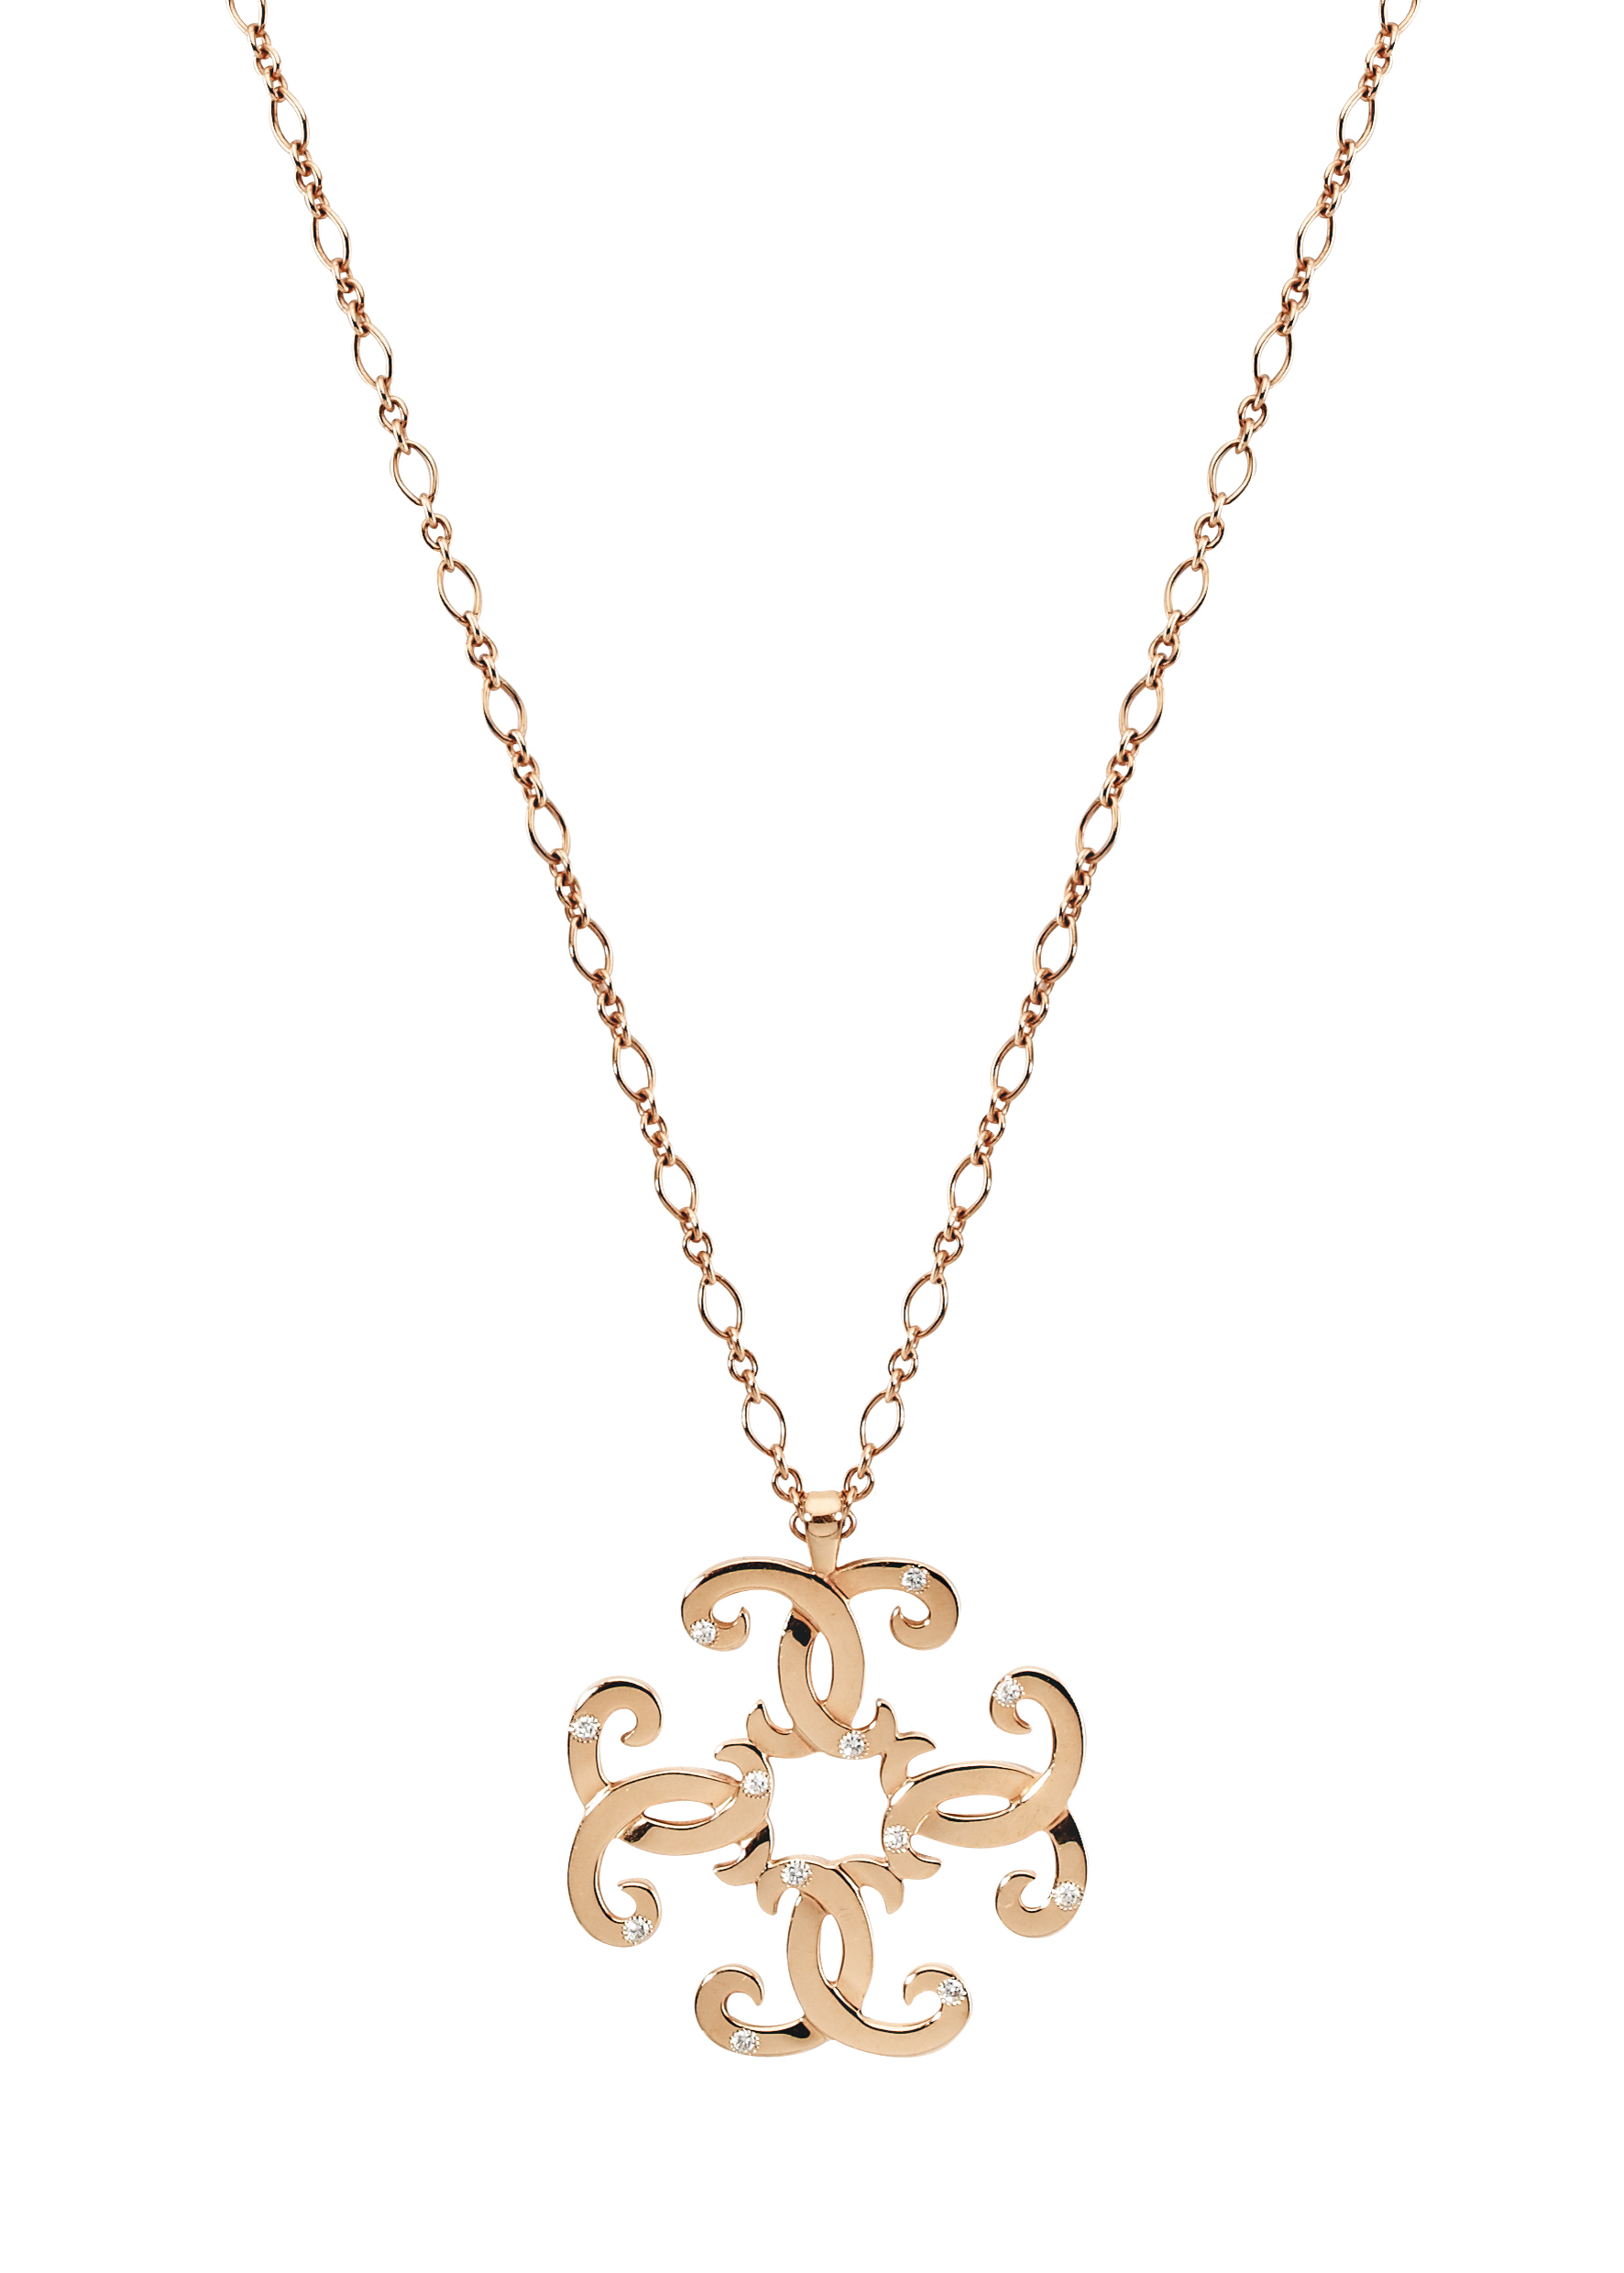 HEDONE ROMANE Rusalka quad necklace